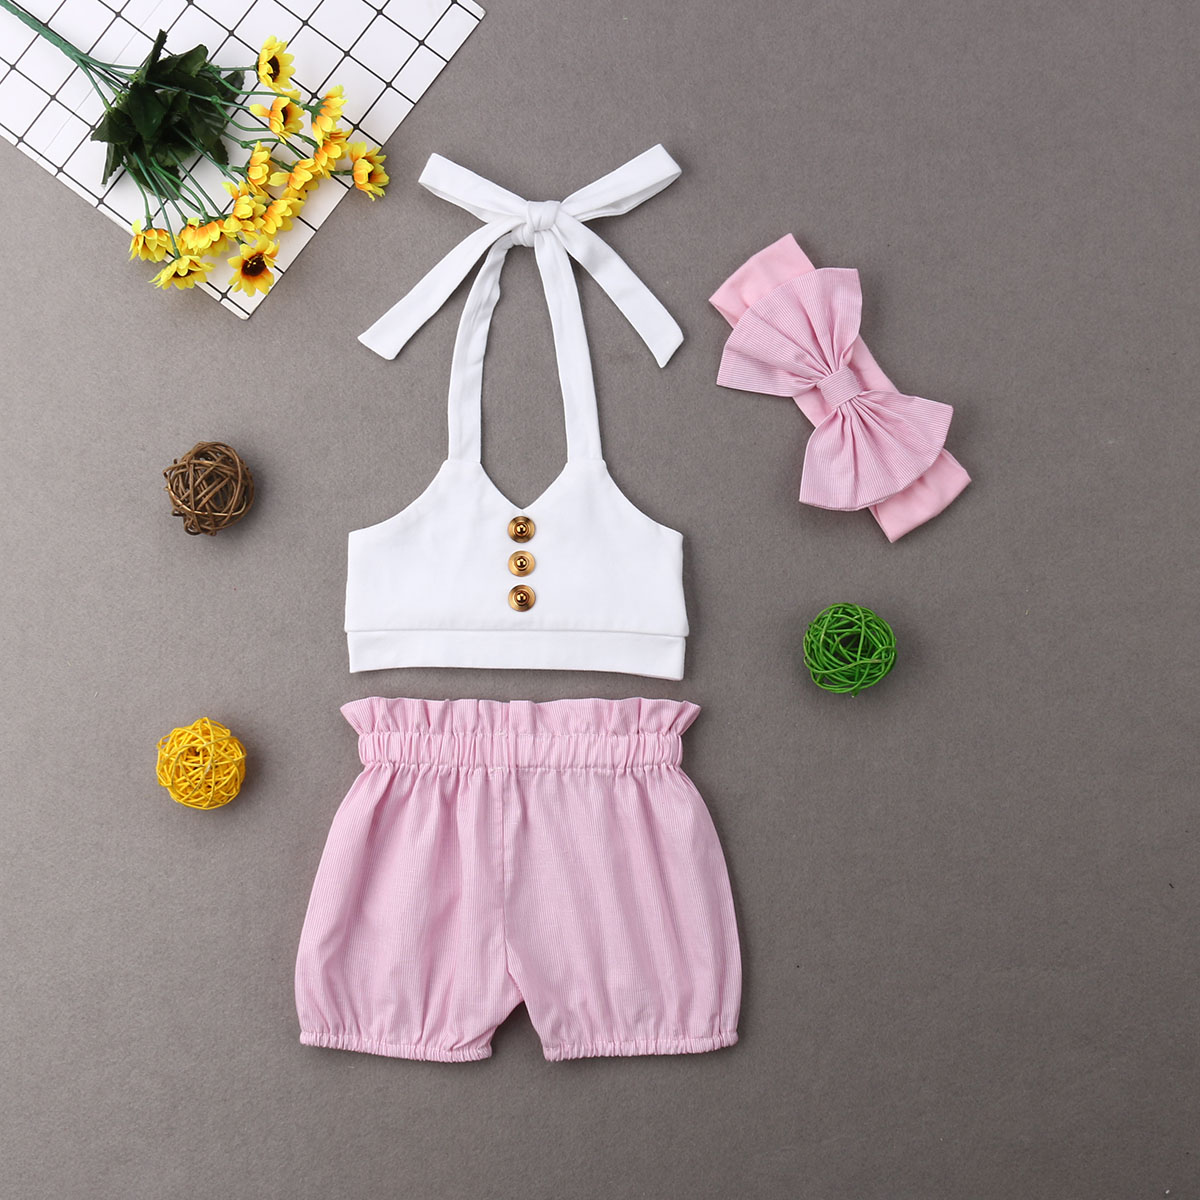 Neugeborenen Baby Mädchen Sommer Kleidung Overall Bandage Tops Shorts Outfits